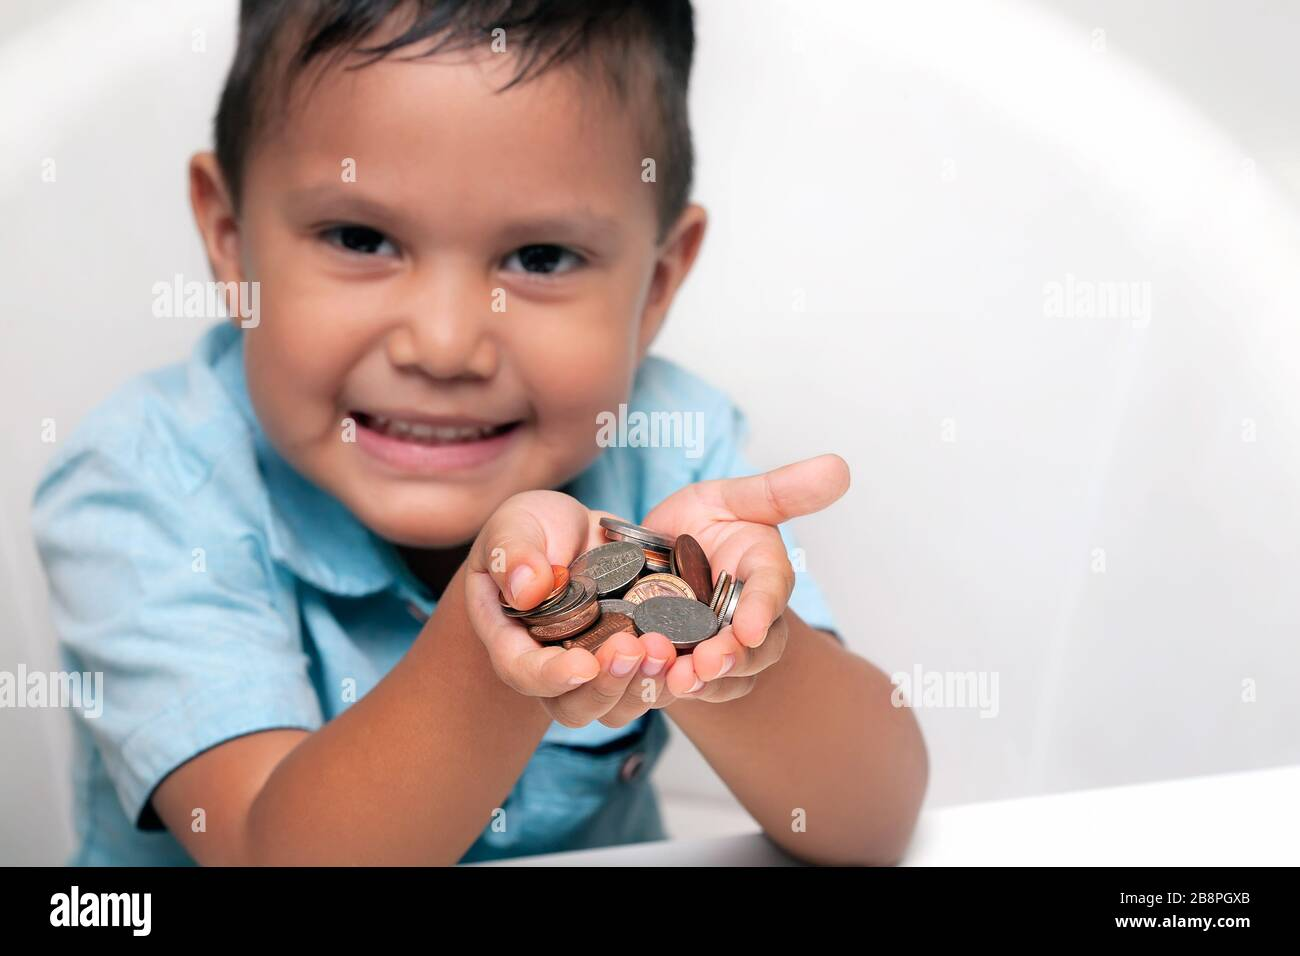 A Hispanic toddler holding U.S. coins in his cupped hands, with a friendly smile to suggest giving or donating money. Stock Photo